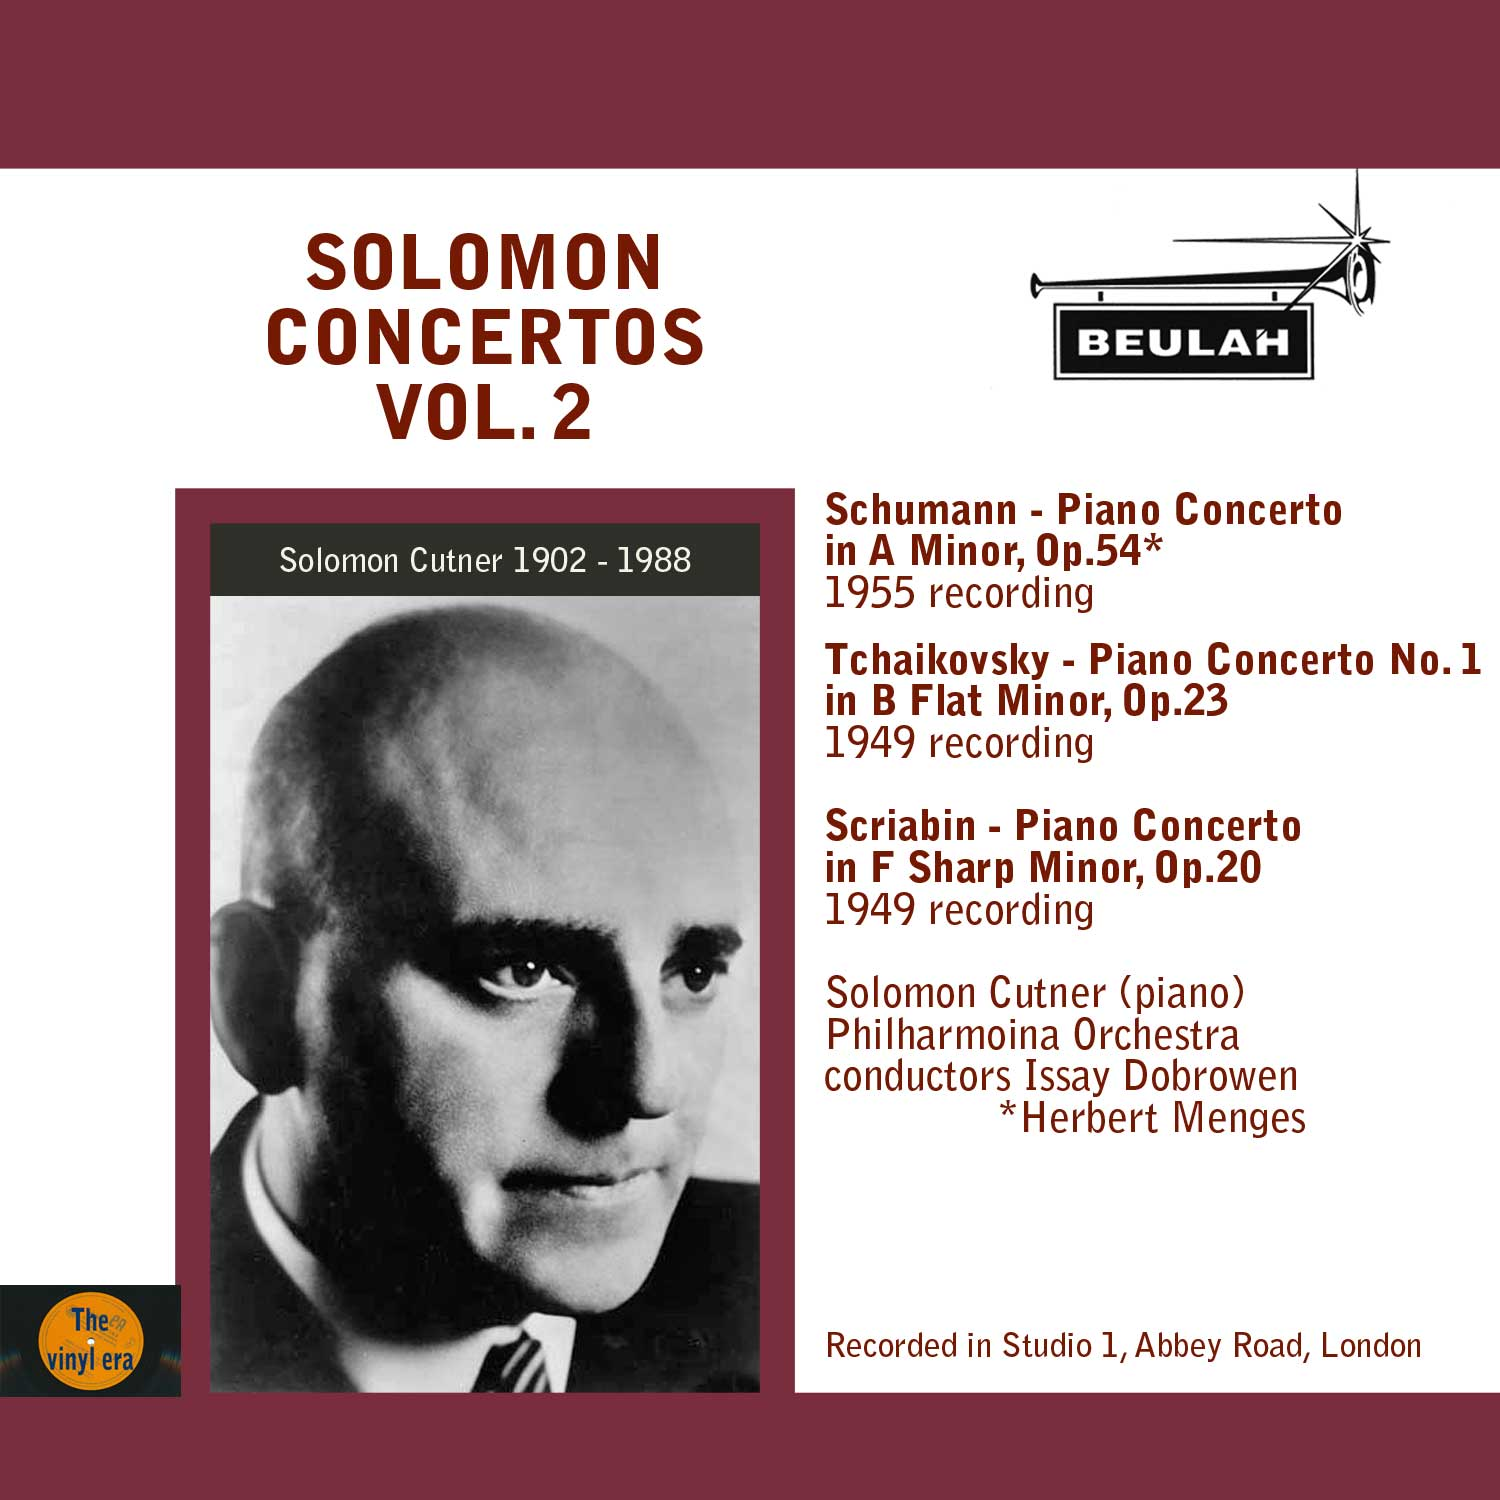 2ps16 solomon concertos vol 2